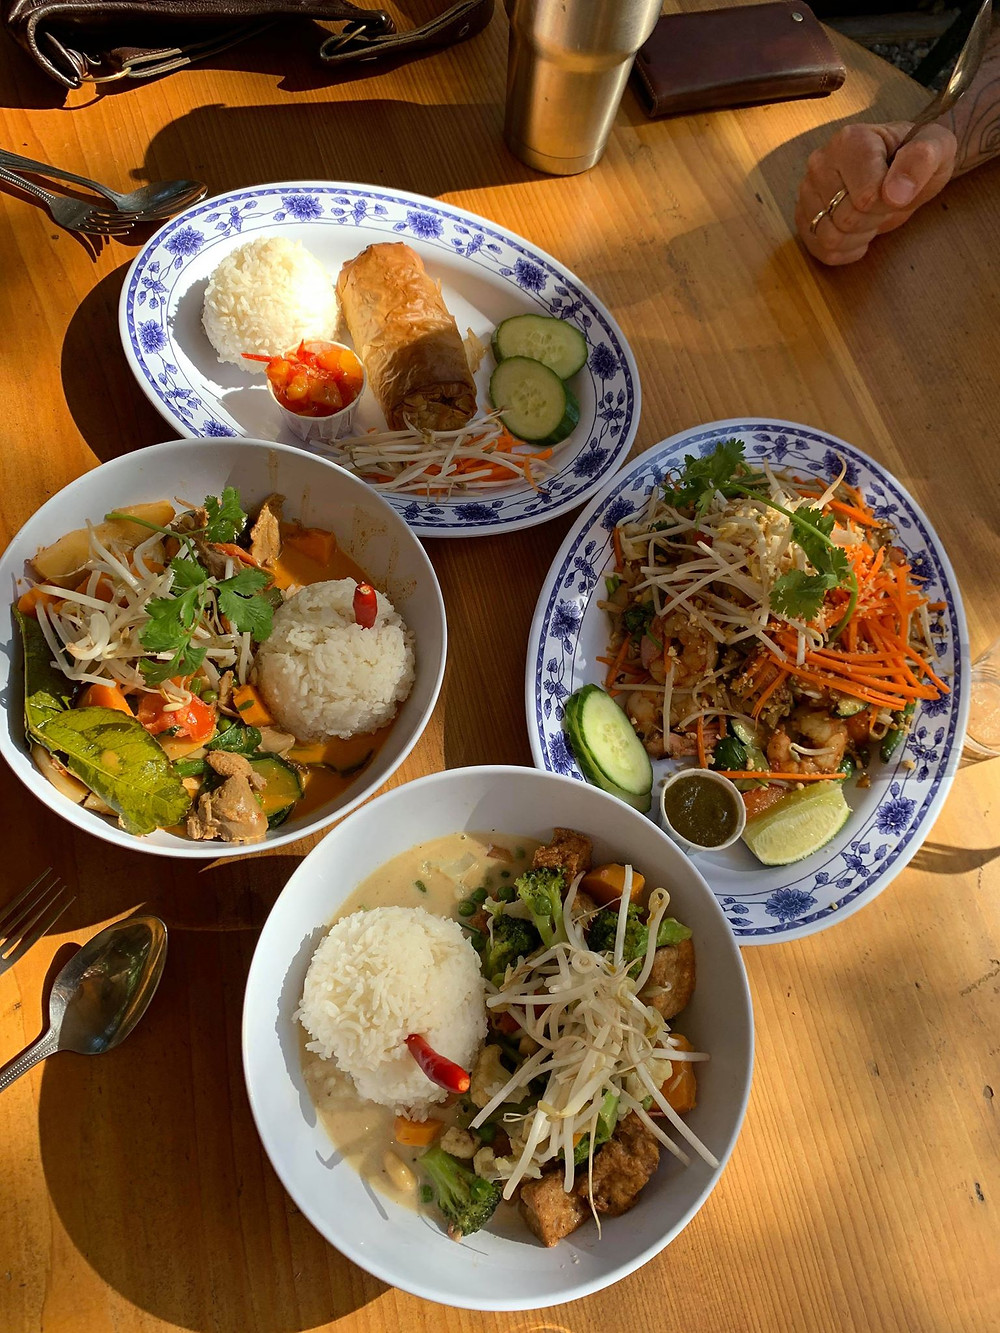 Pad thai, curry, and other amazing food at Wild1 Cookhouse on Galiano Island